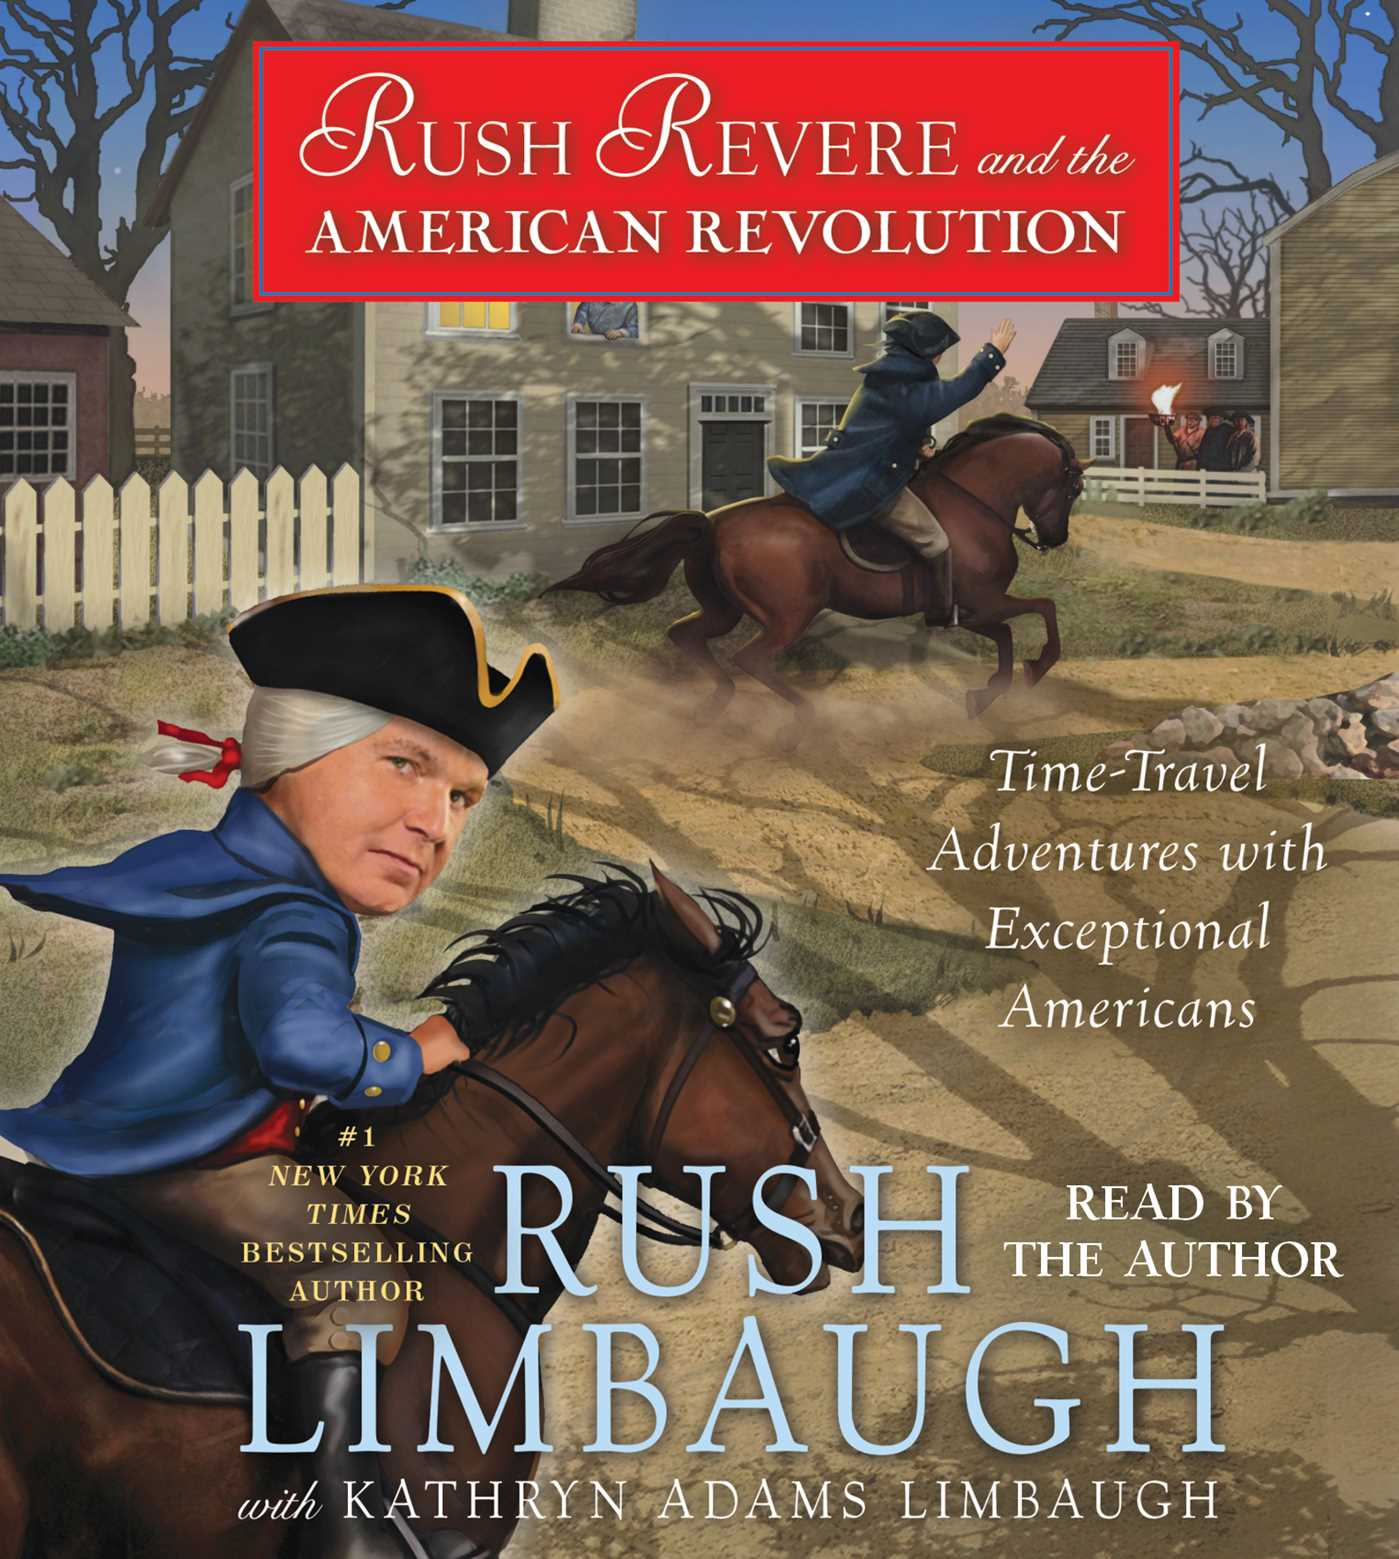 Rush revere and the american revolution 9781442378186 hr